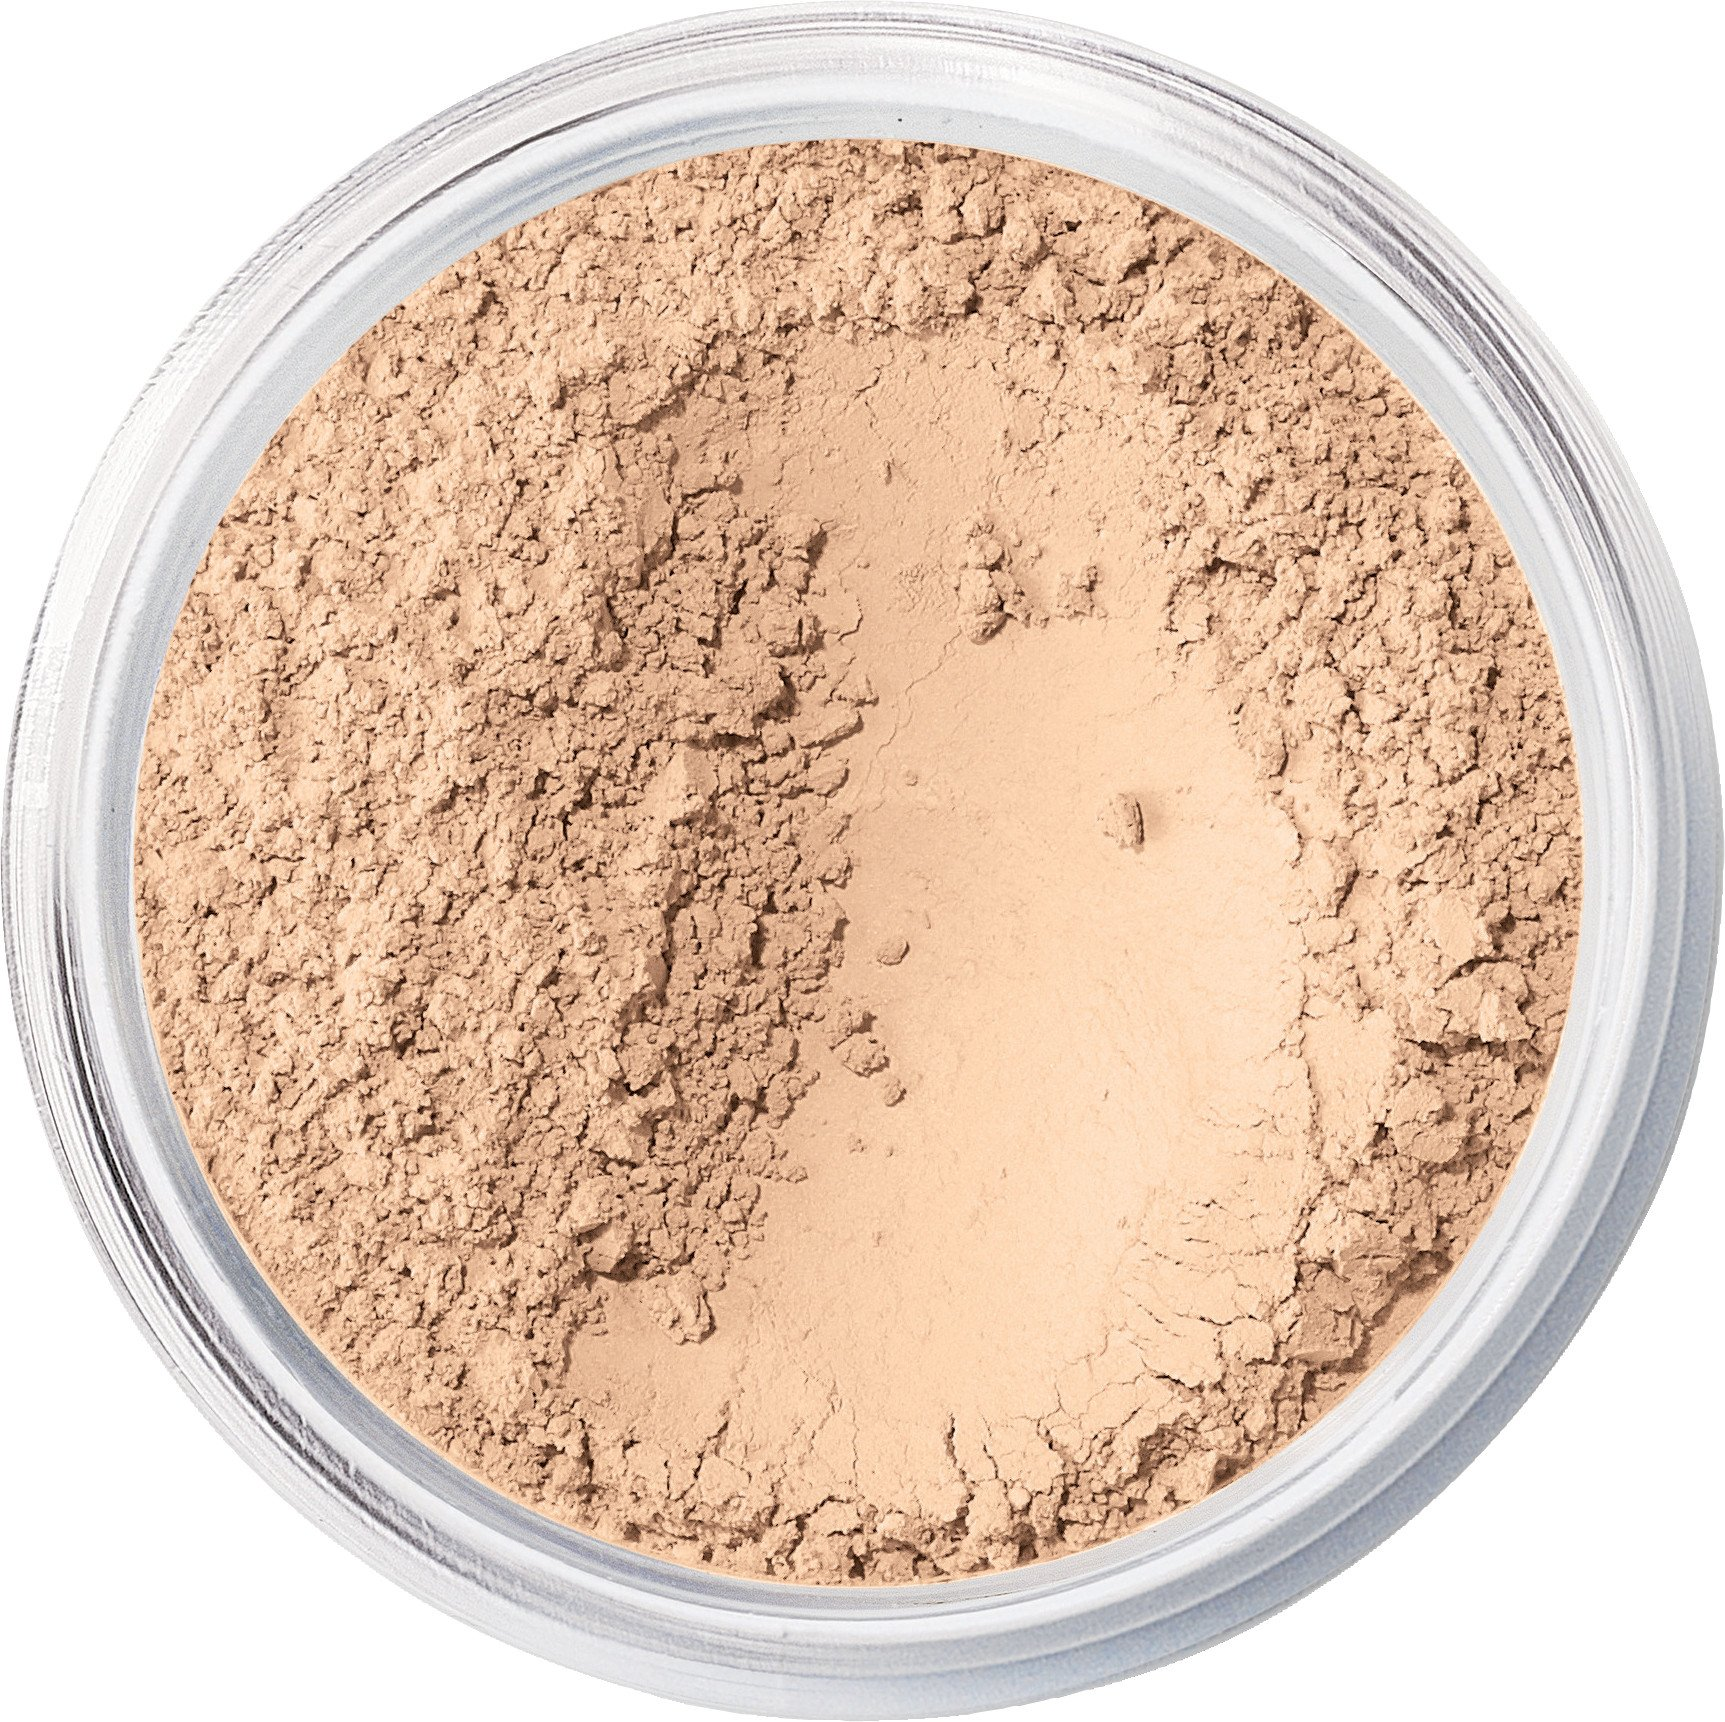 Bare Escentuals bareMinerals Original SPF 15 Foundation - Fairly Light 8g by bare Minerals (Image #1)